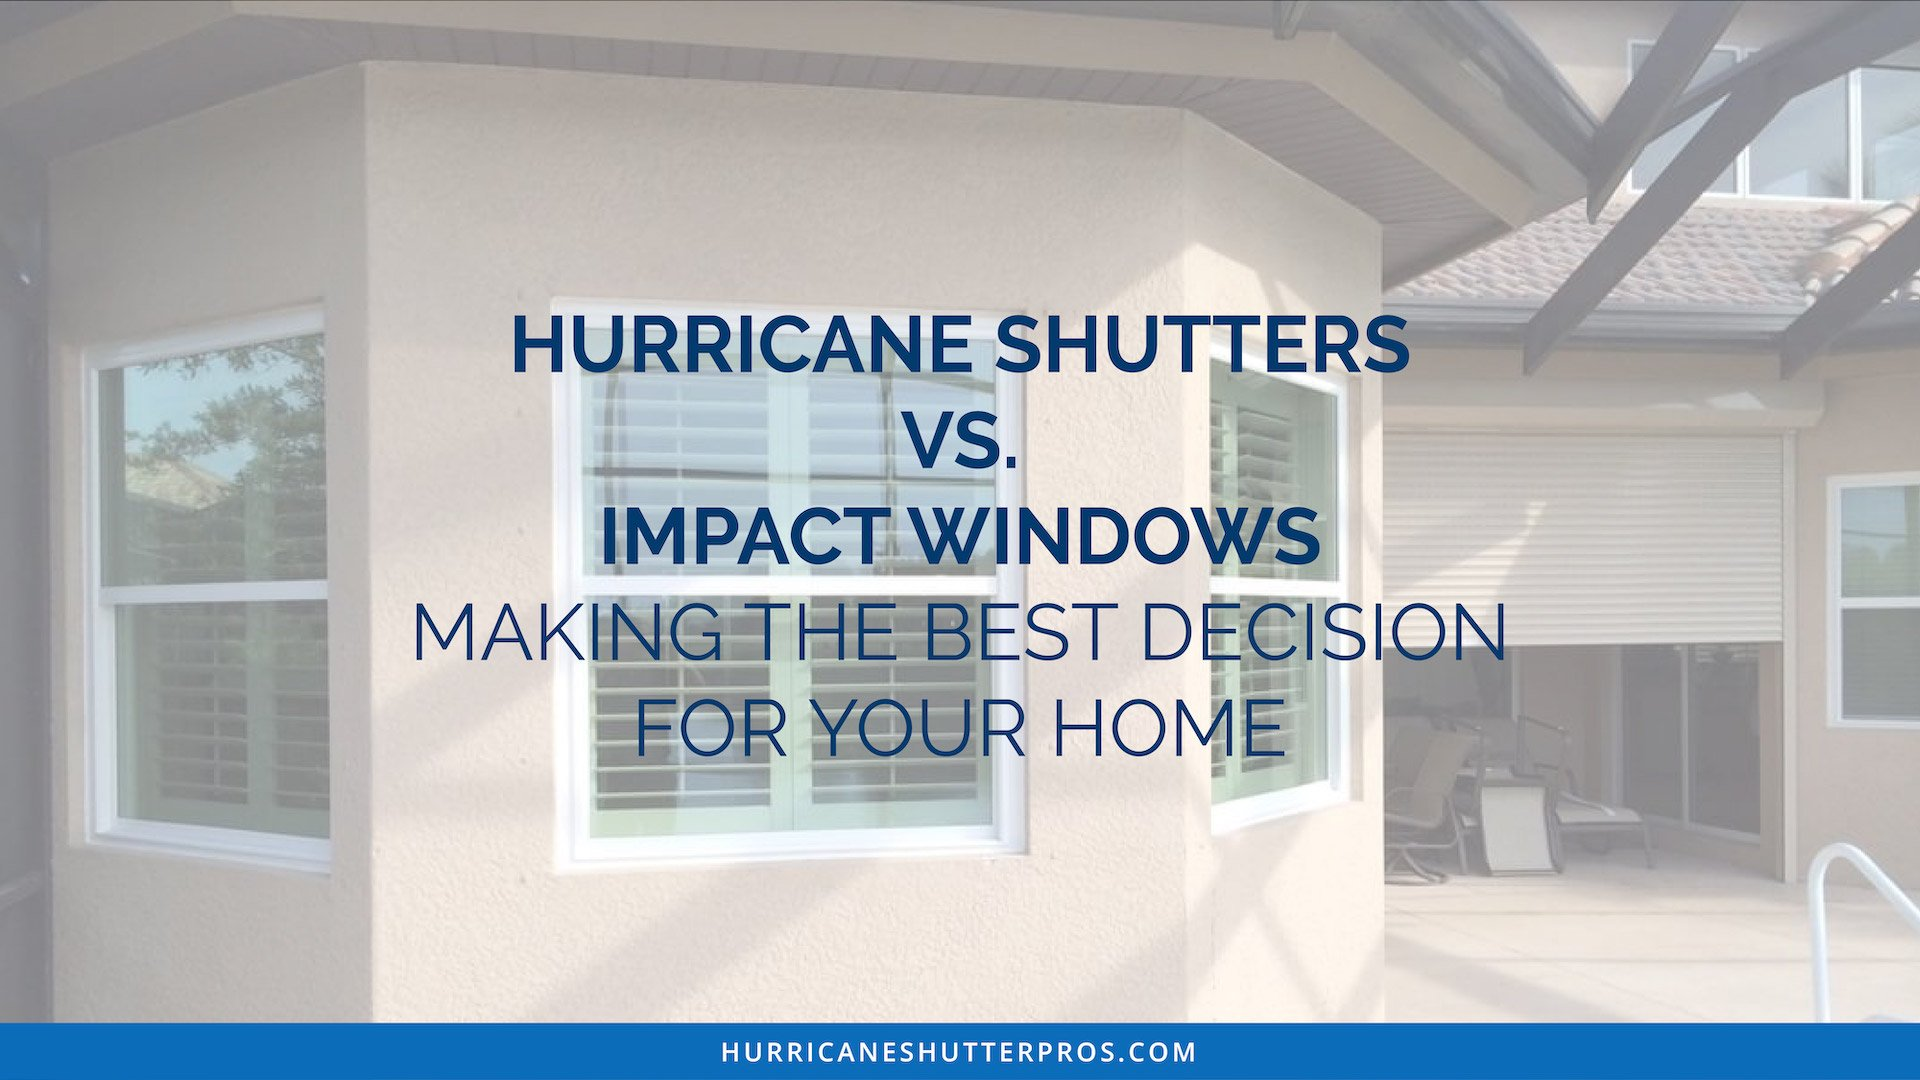 Hurricane Shutters vs. Impact Windows: Making the Best Decision for Your Home